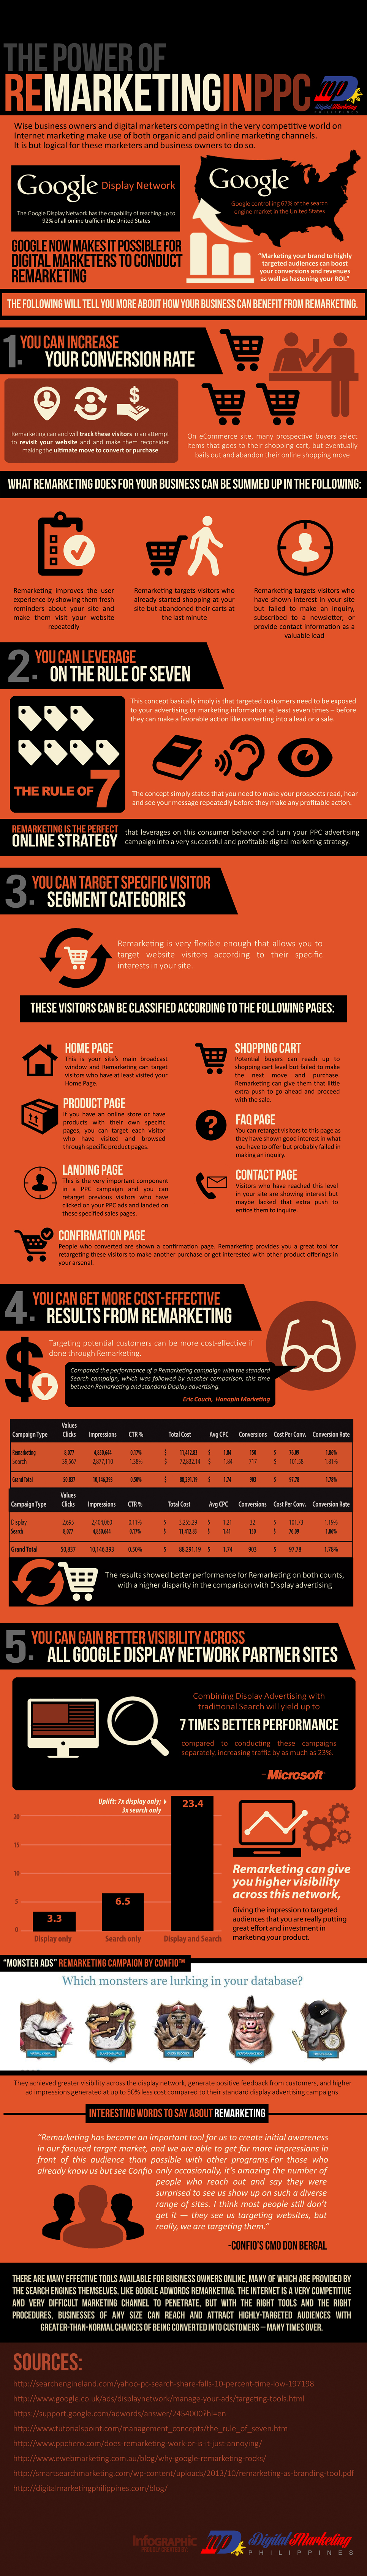 The-Power-of-Remarketing-in-PPC